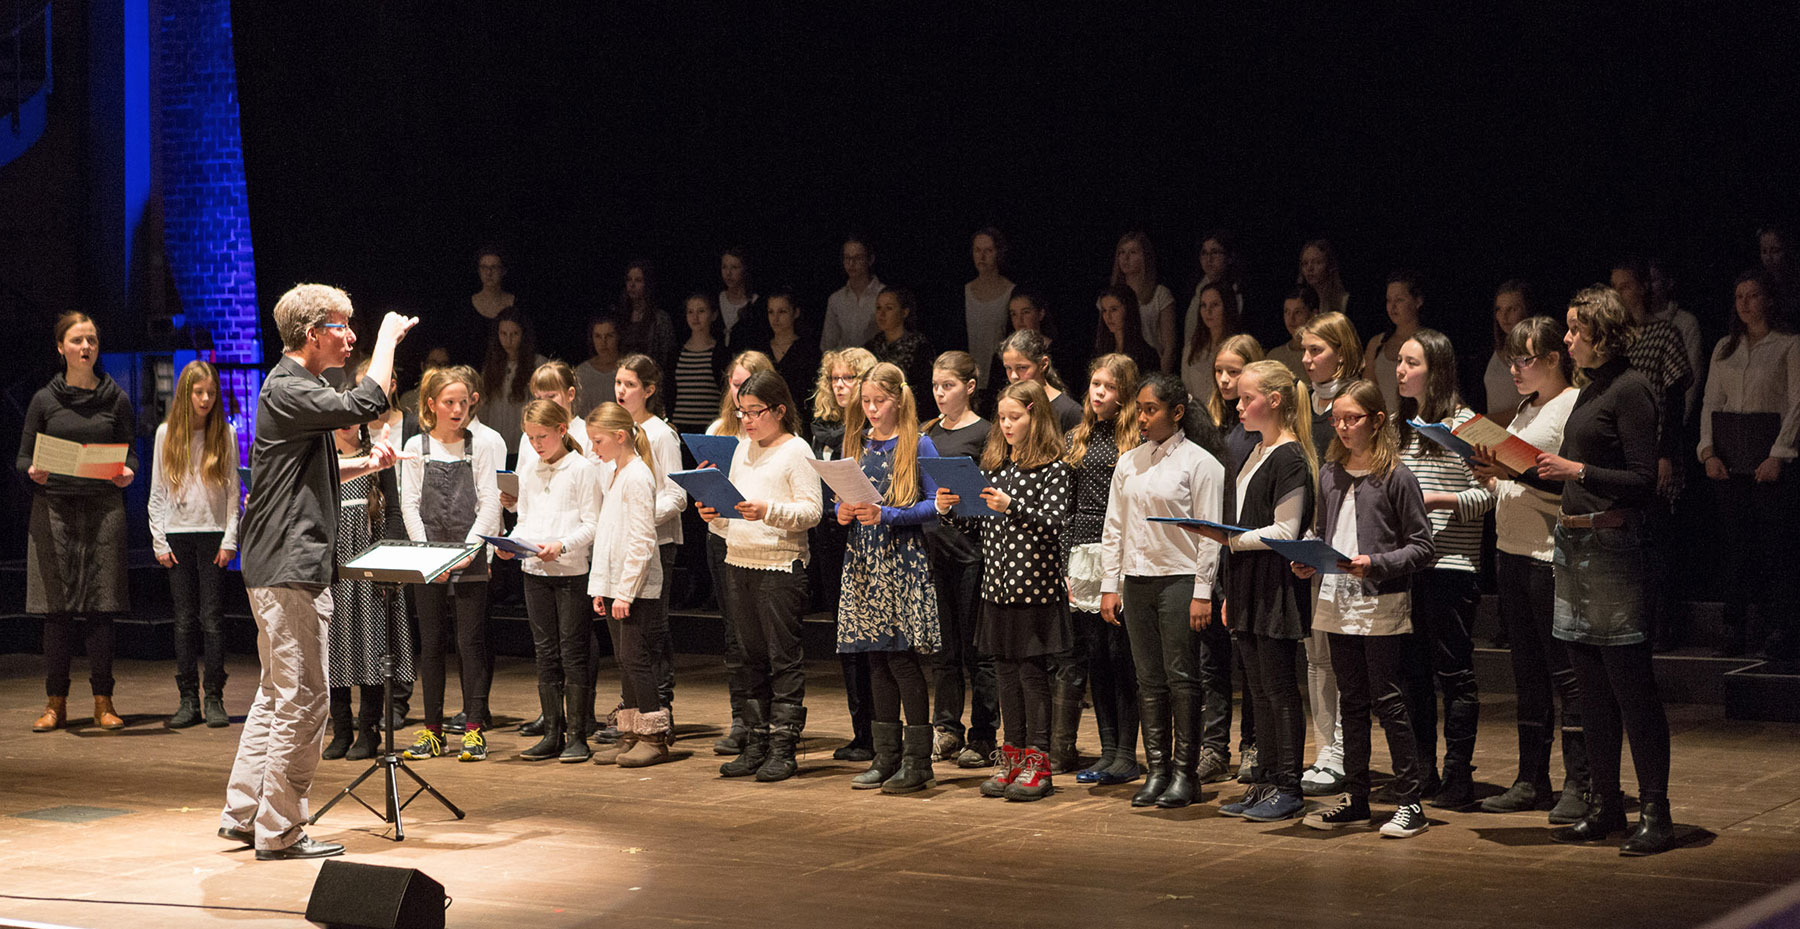 Workshop »Conducing youth choirs« 2015: Closing concert with the Berlin Girls' Choir